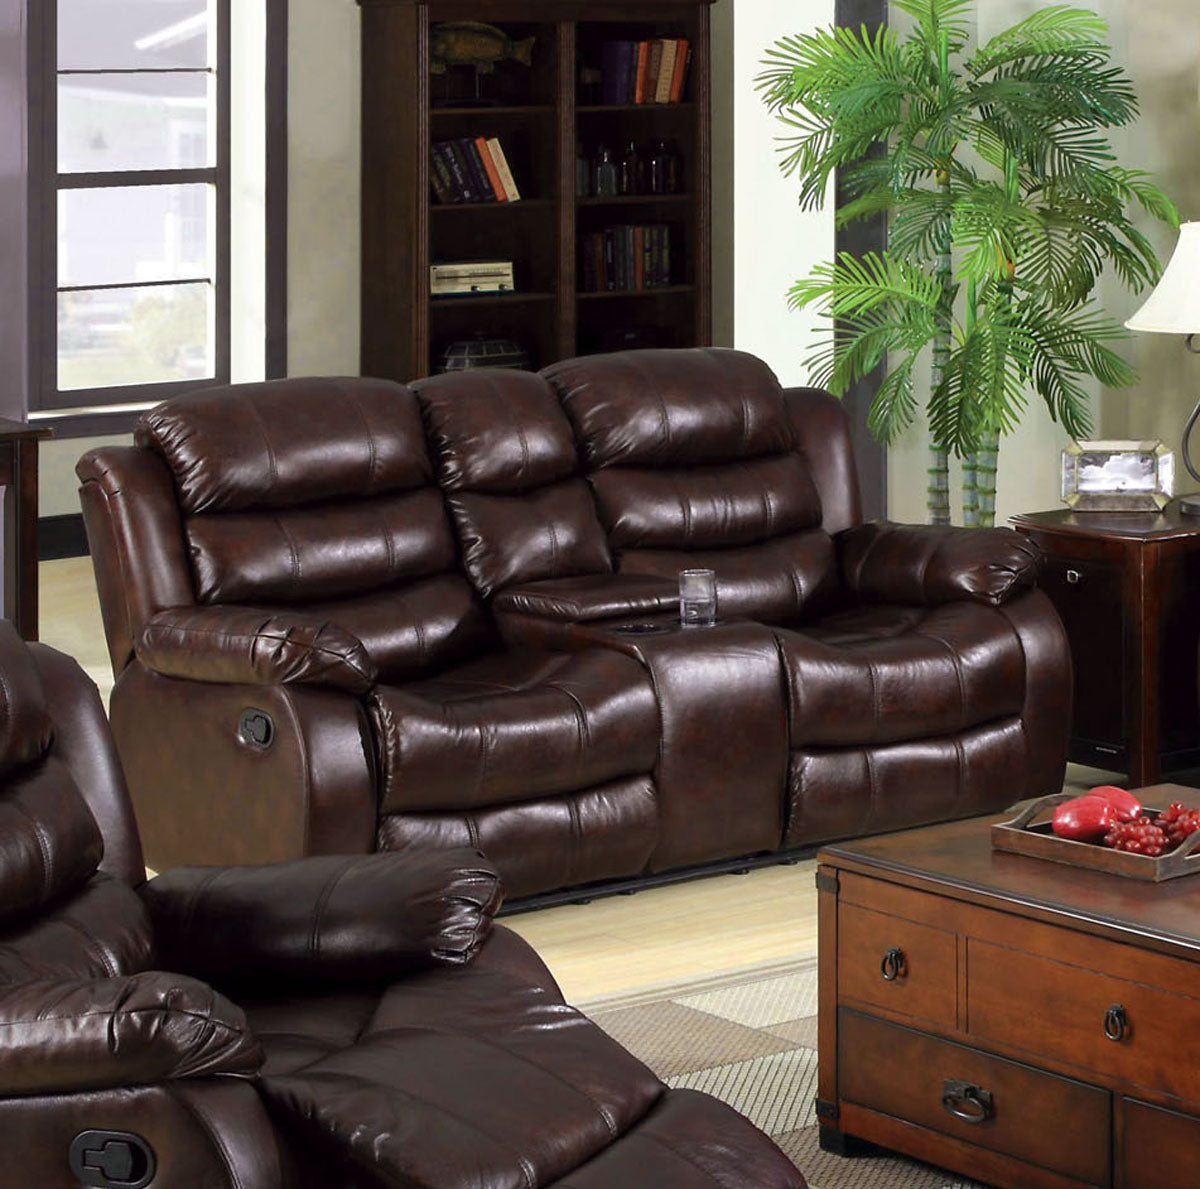 Furniture Of America Berkshire Rustic Brown Leather-like Center Console Recliner Loveseat